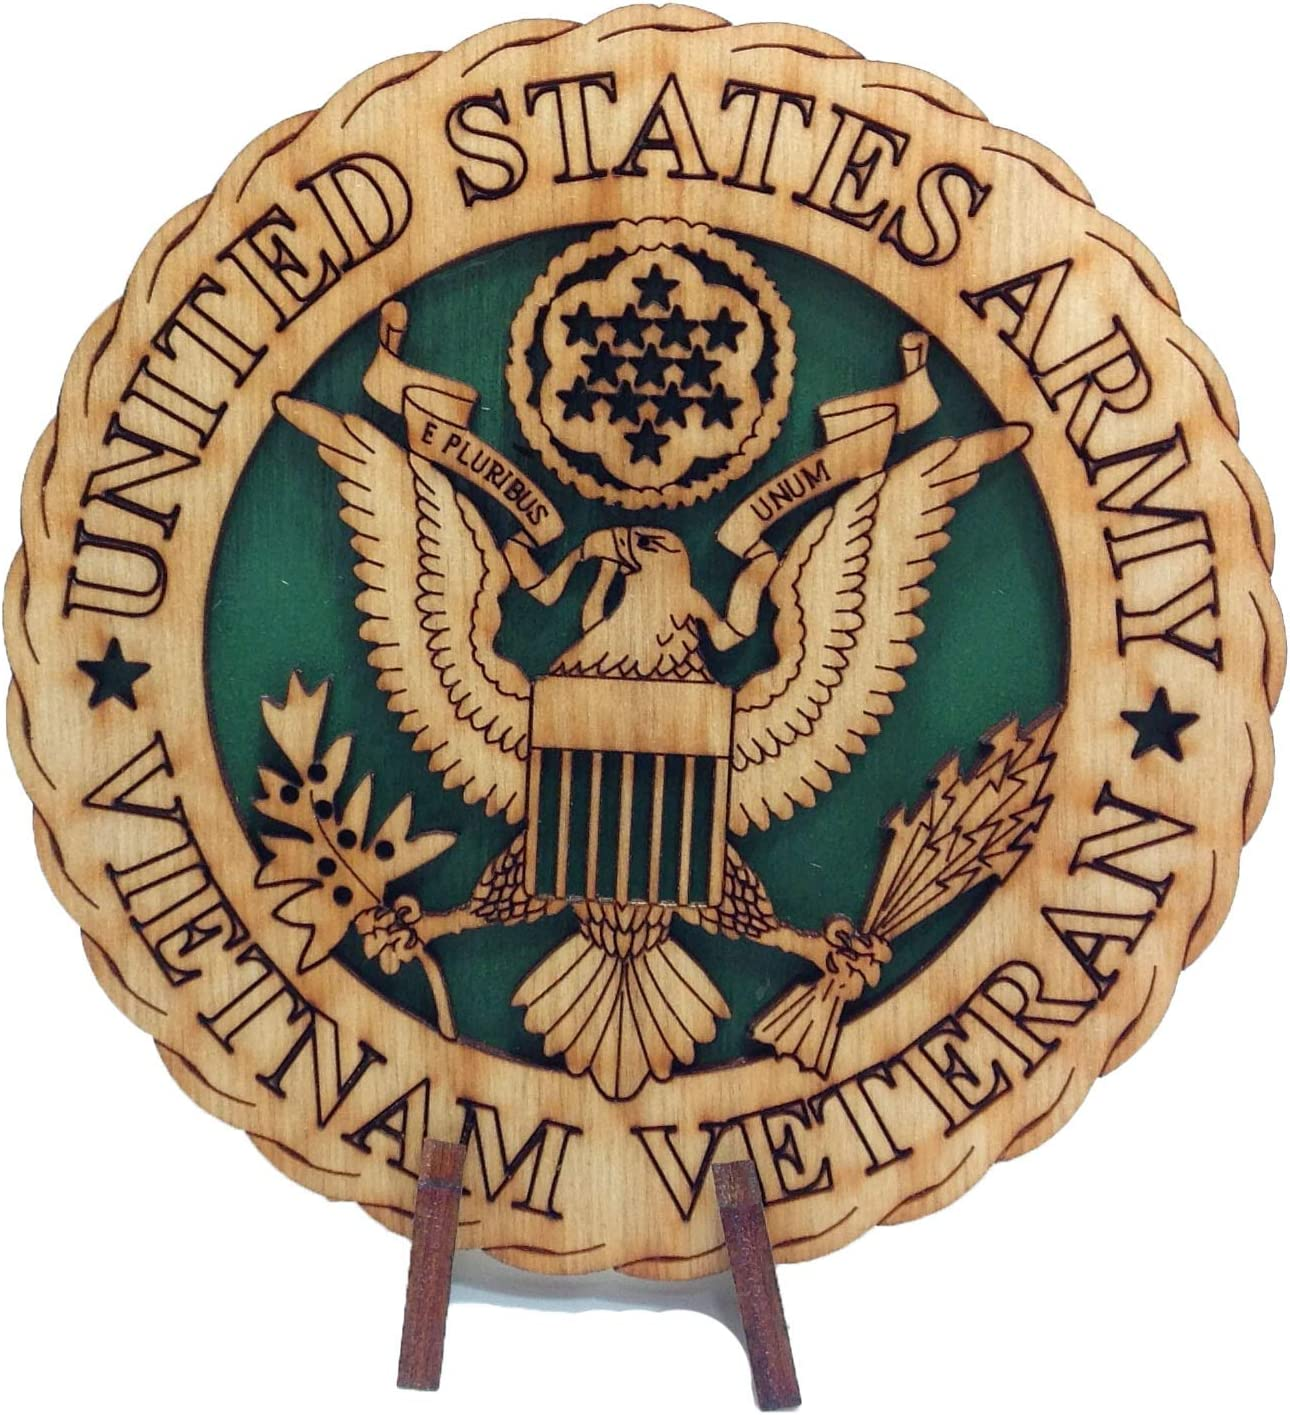 Armed Forces Air Force Military Decorative Laser Three Dimensional Wooden Desk Plaque